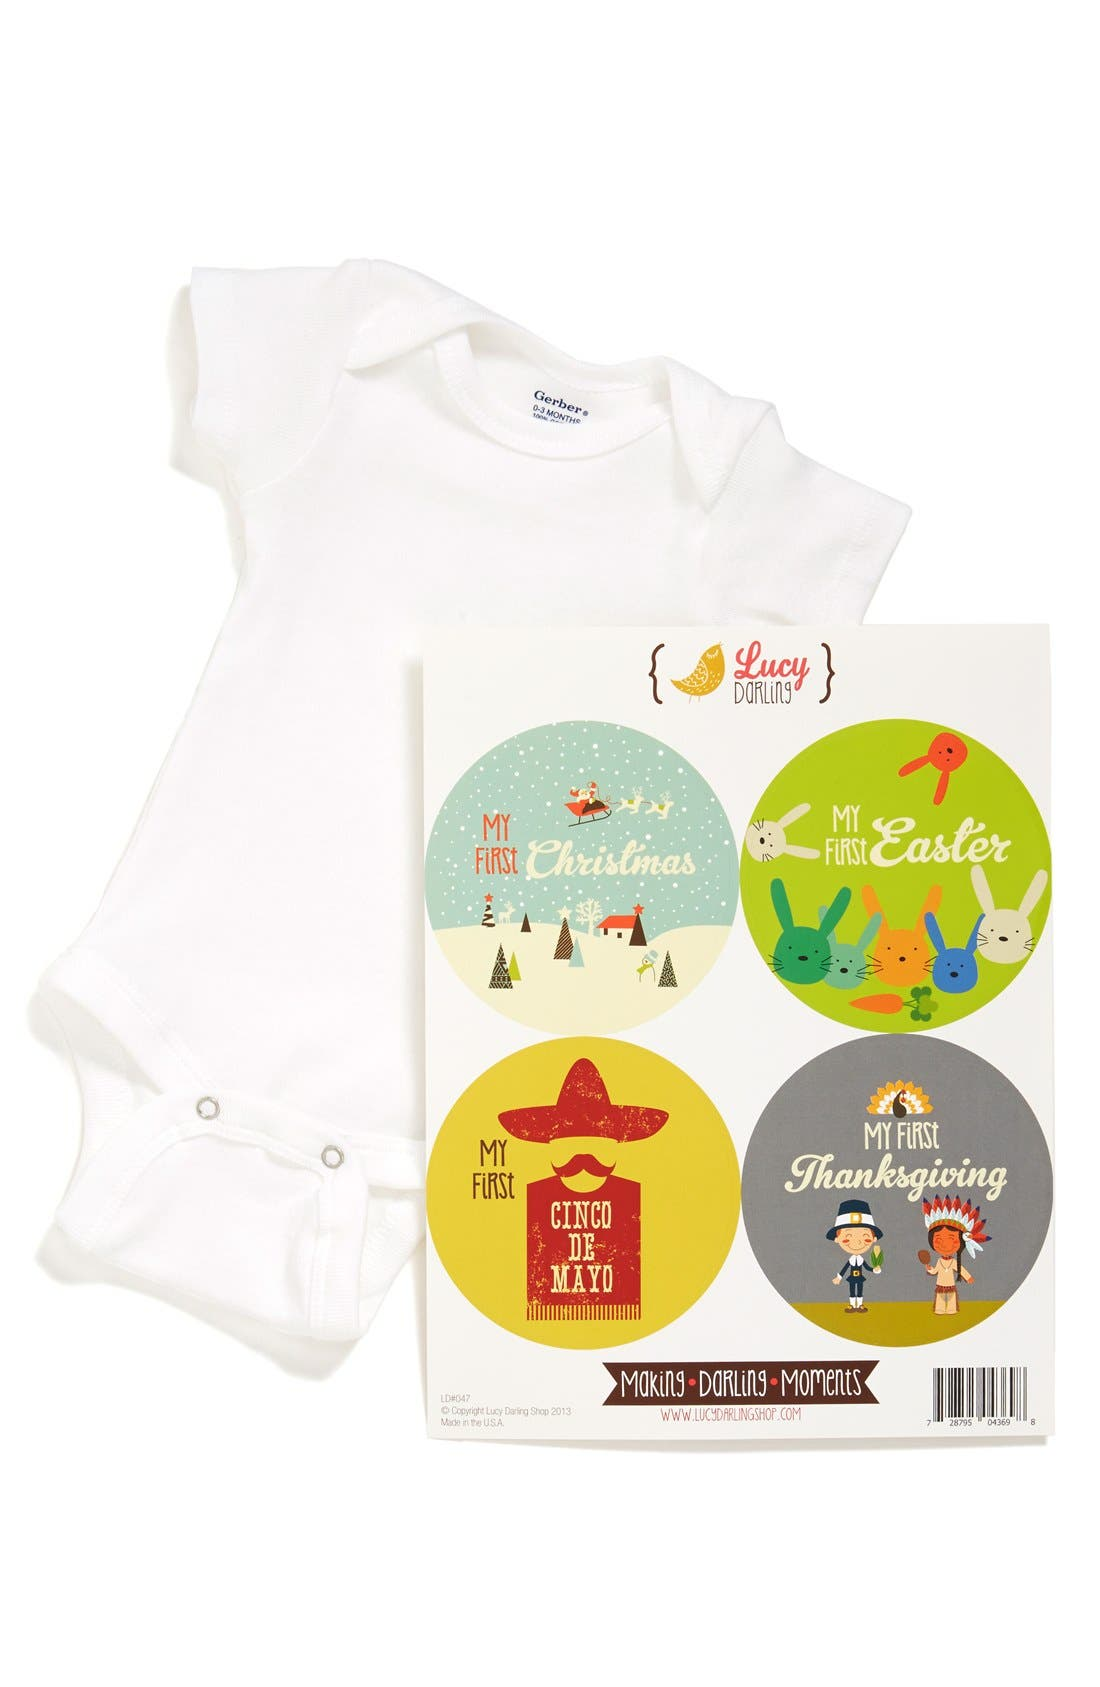 Alternate Image 1 Selected - Lucy Darling Bodysuit & Stickers (Baby)